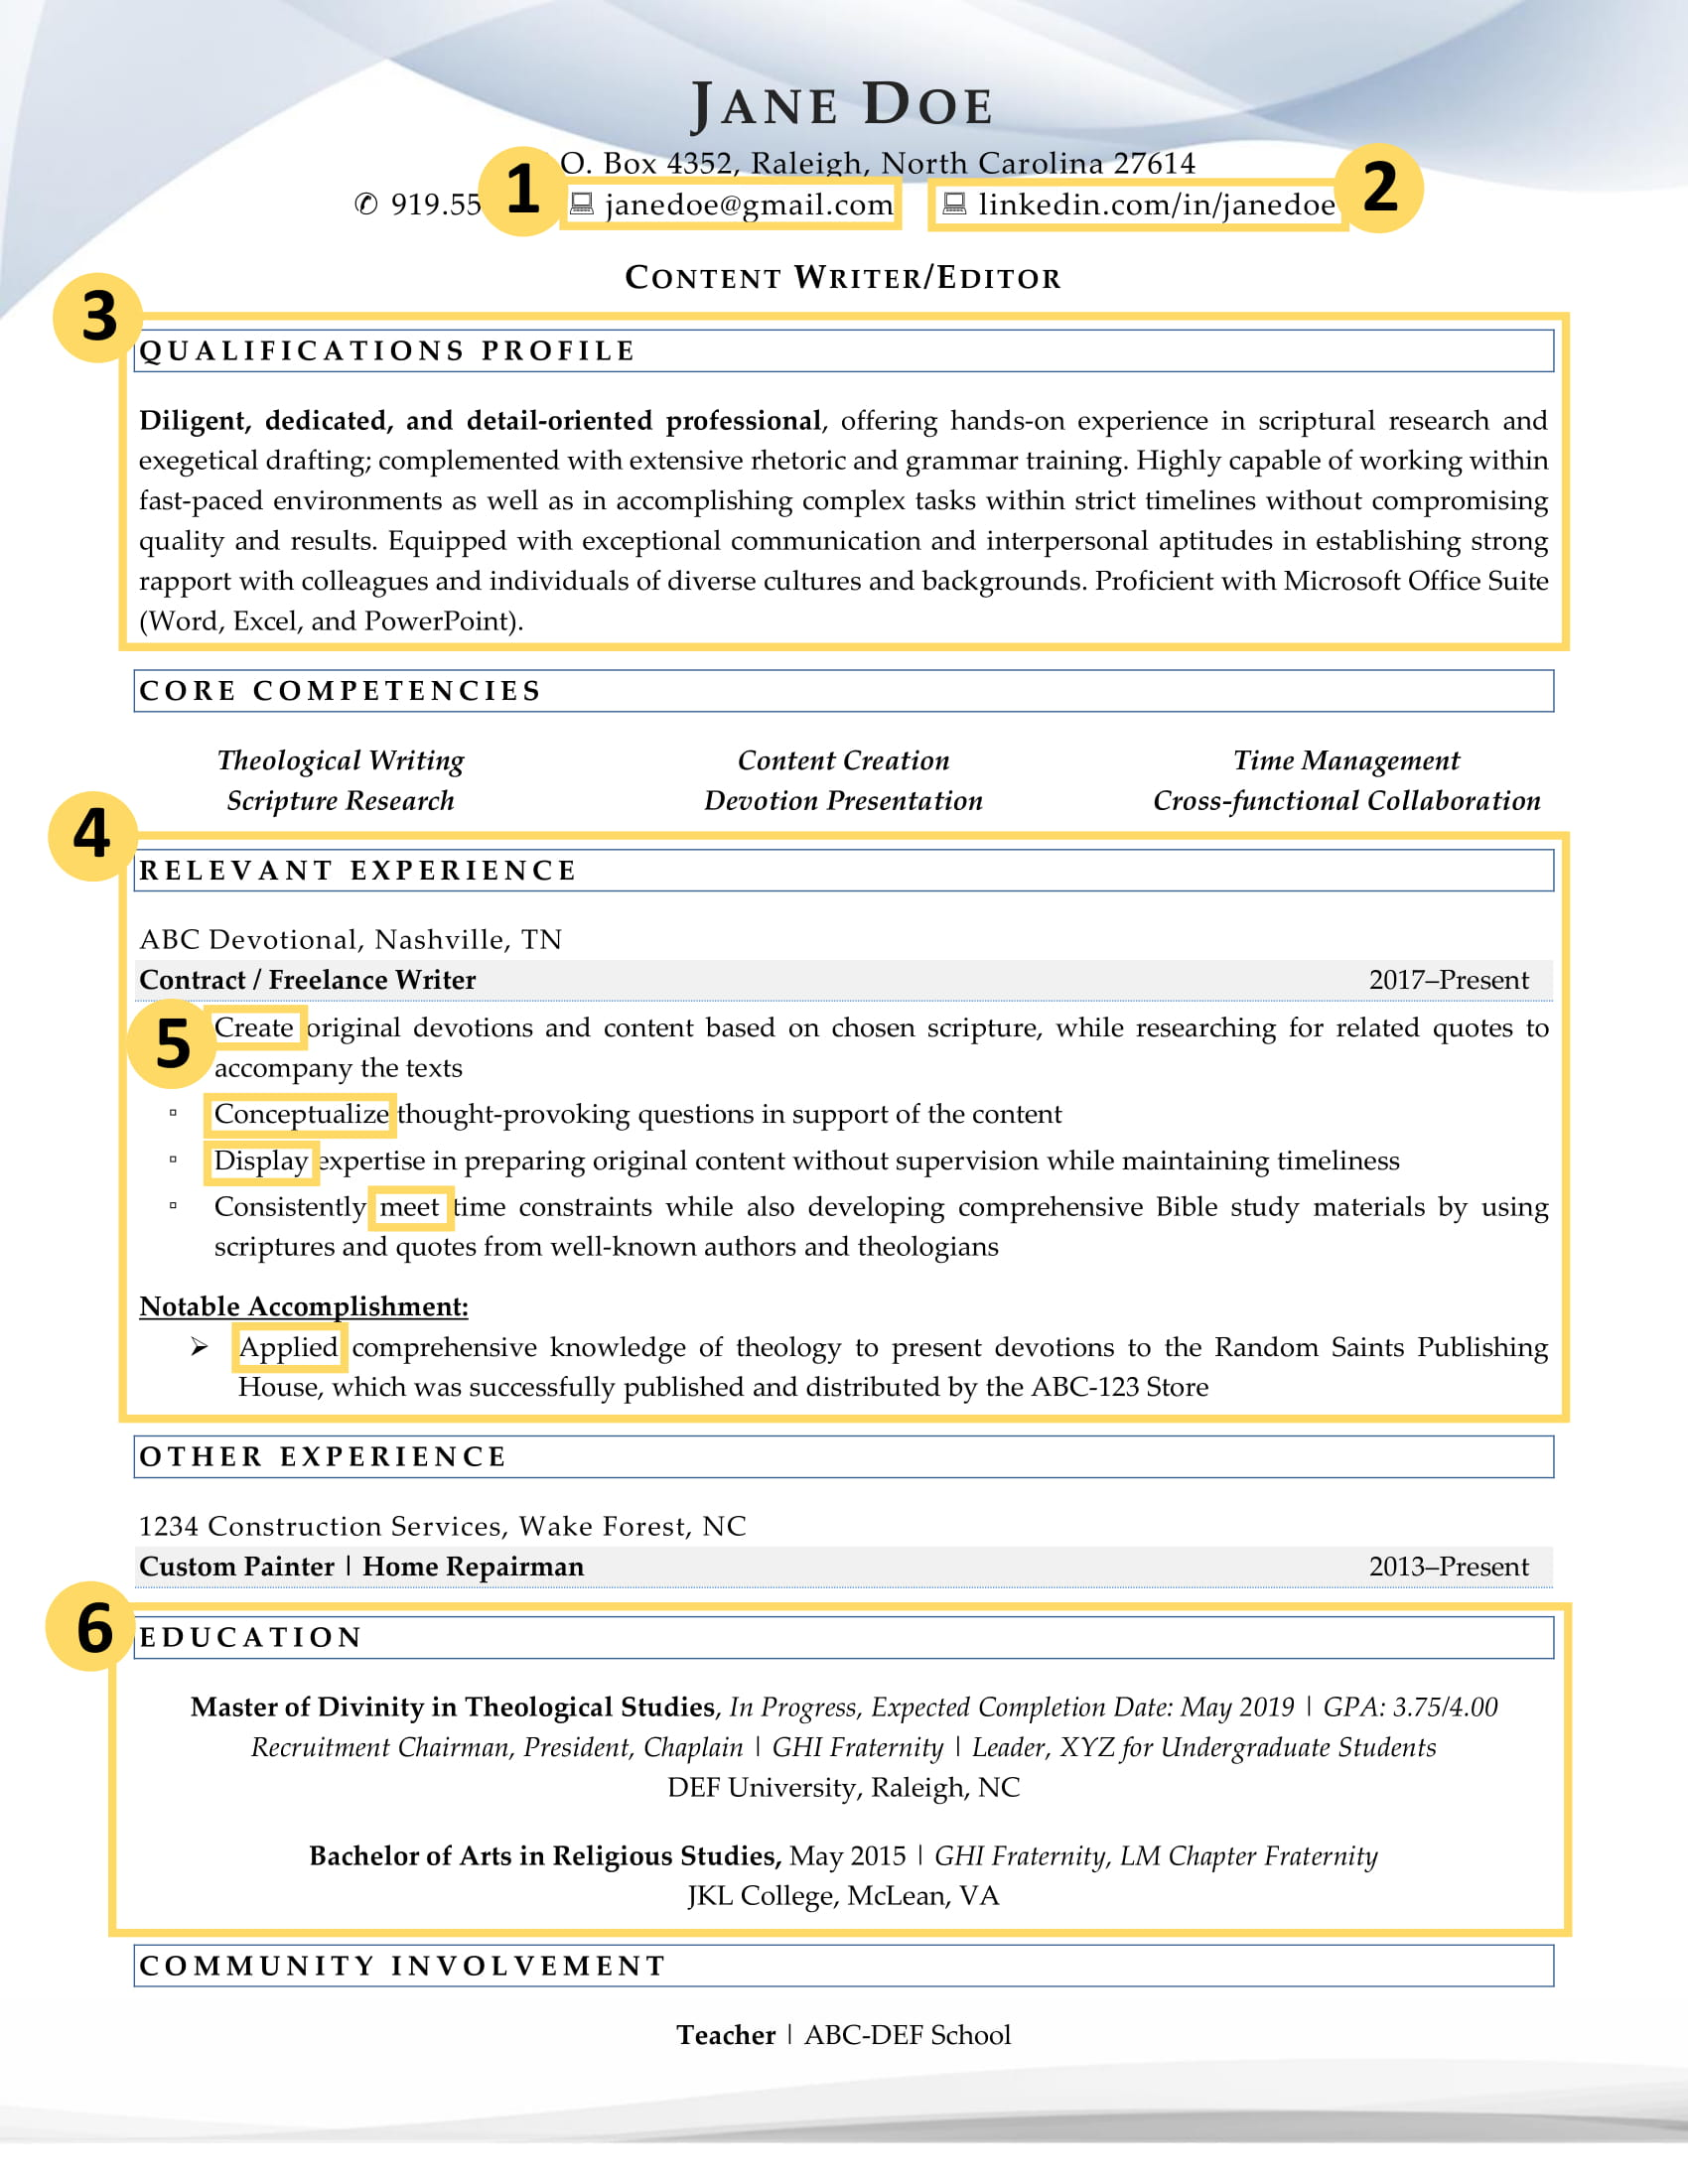 This recent graduate resume example highlights the specific parts which makes it effective.